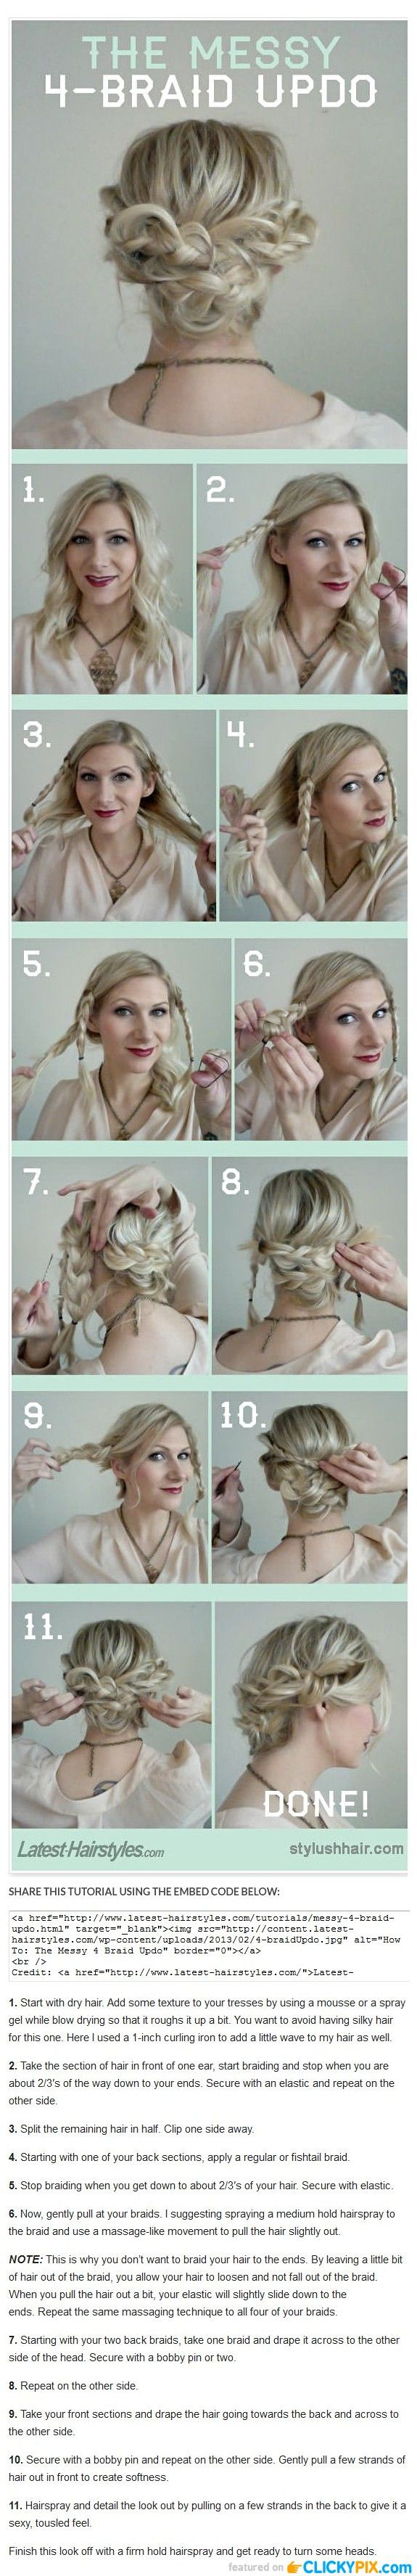 DIY Hair Tutorials Step by Step Guides